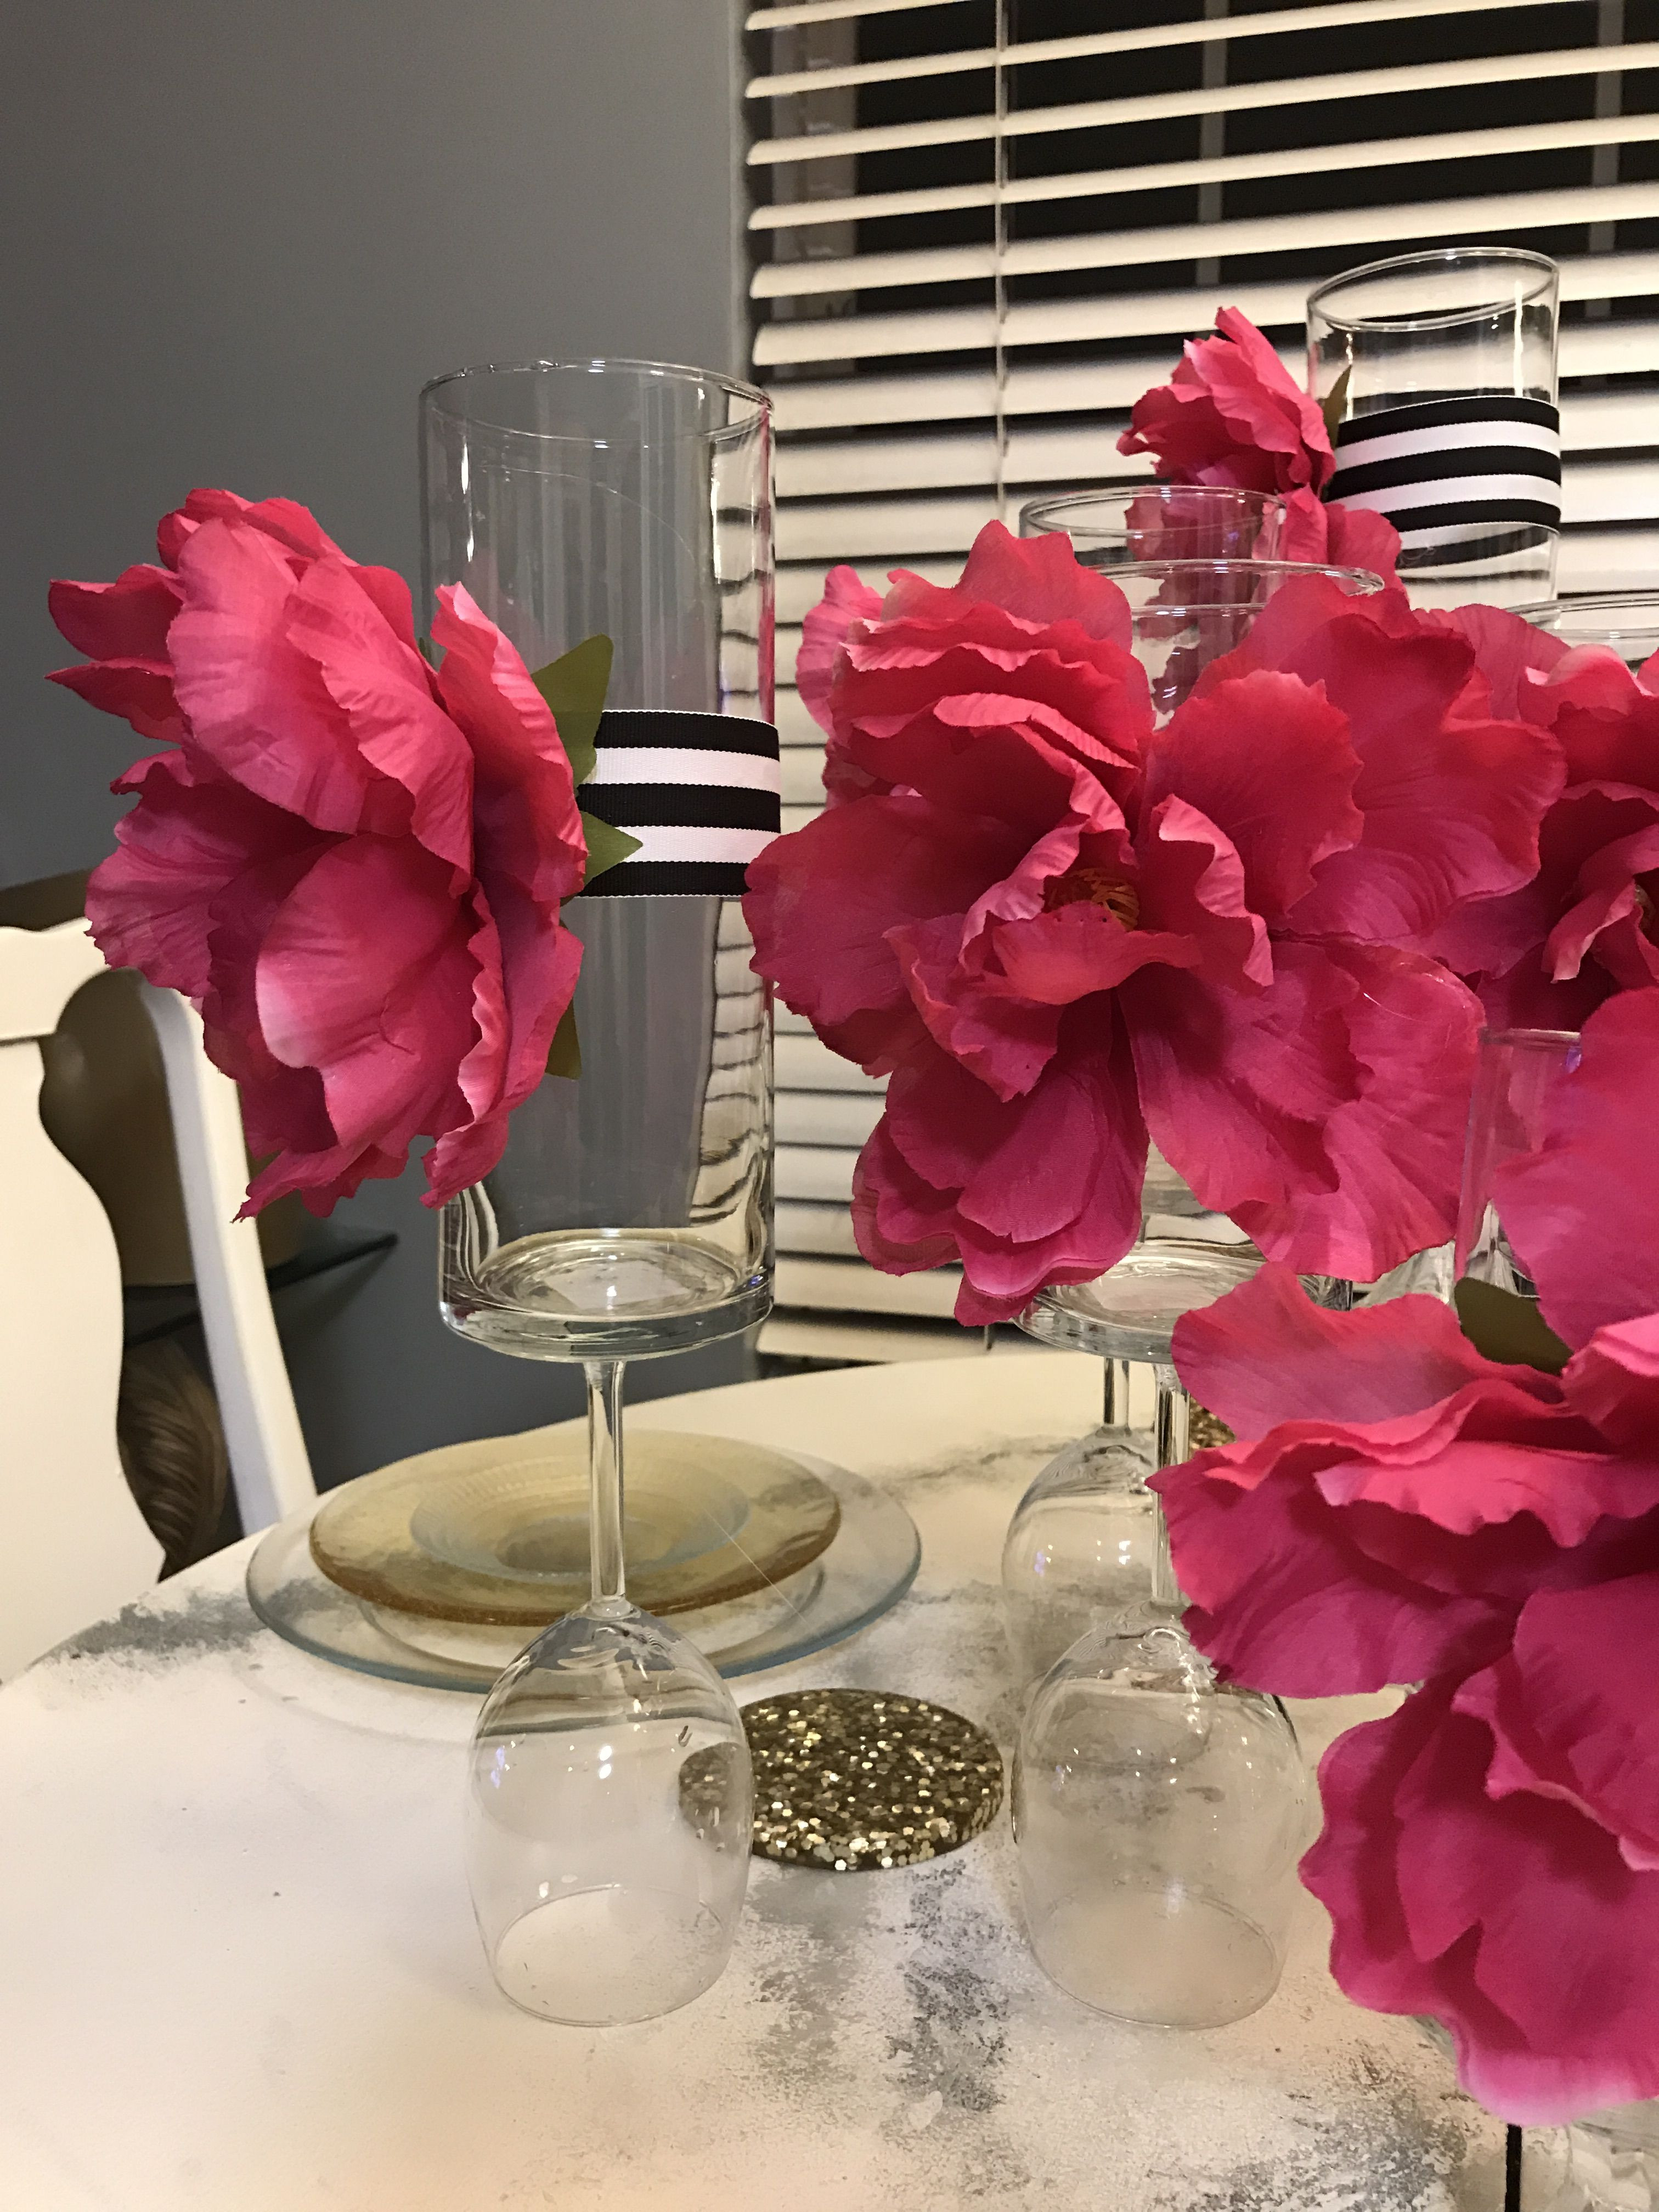 ideas for glass vases for centerpieces of centerpieces diy flower centerpieces glass vase centerpiece kate regarding centerpieces diy flower centerpieces glass vase centerpiece kate spade inspired centerpieces womens